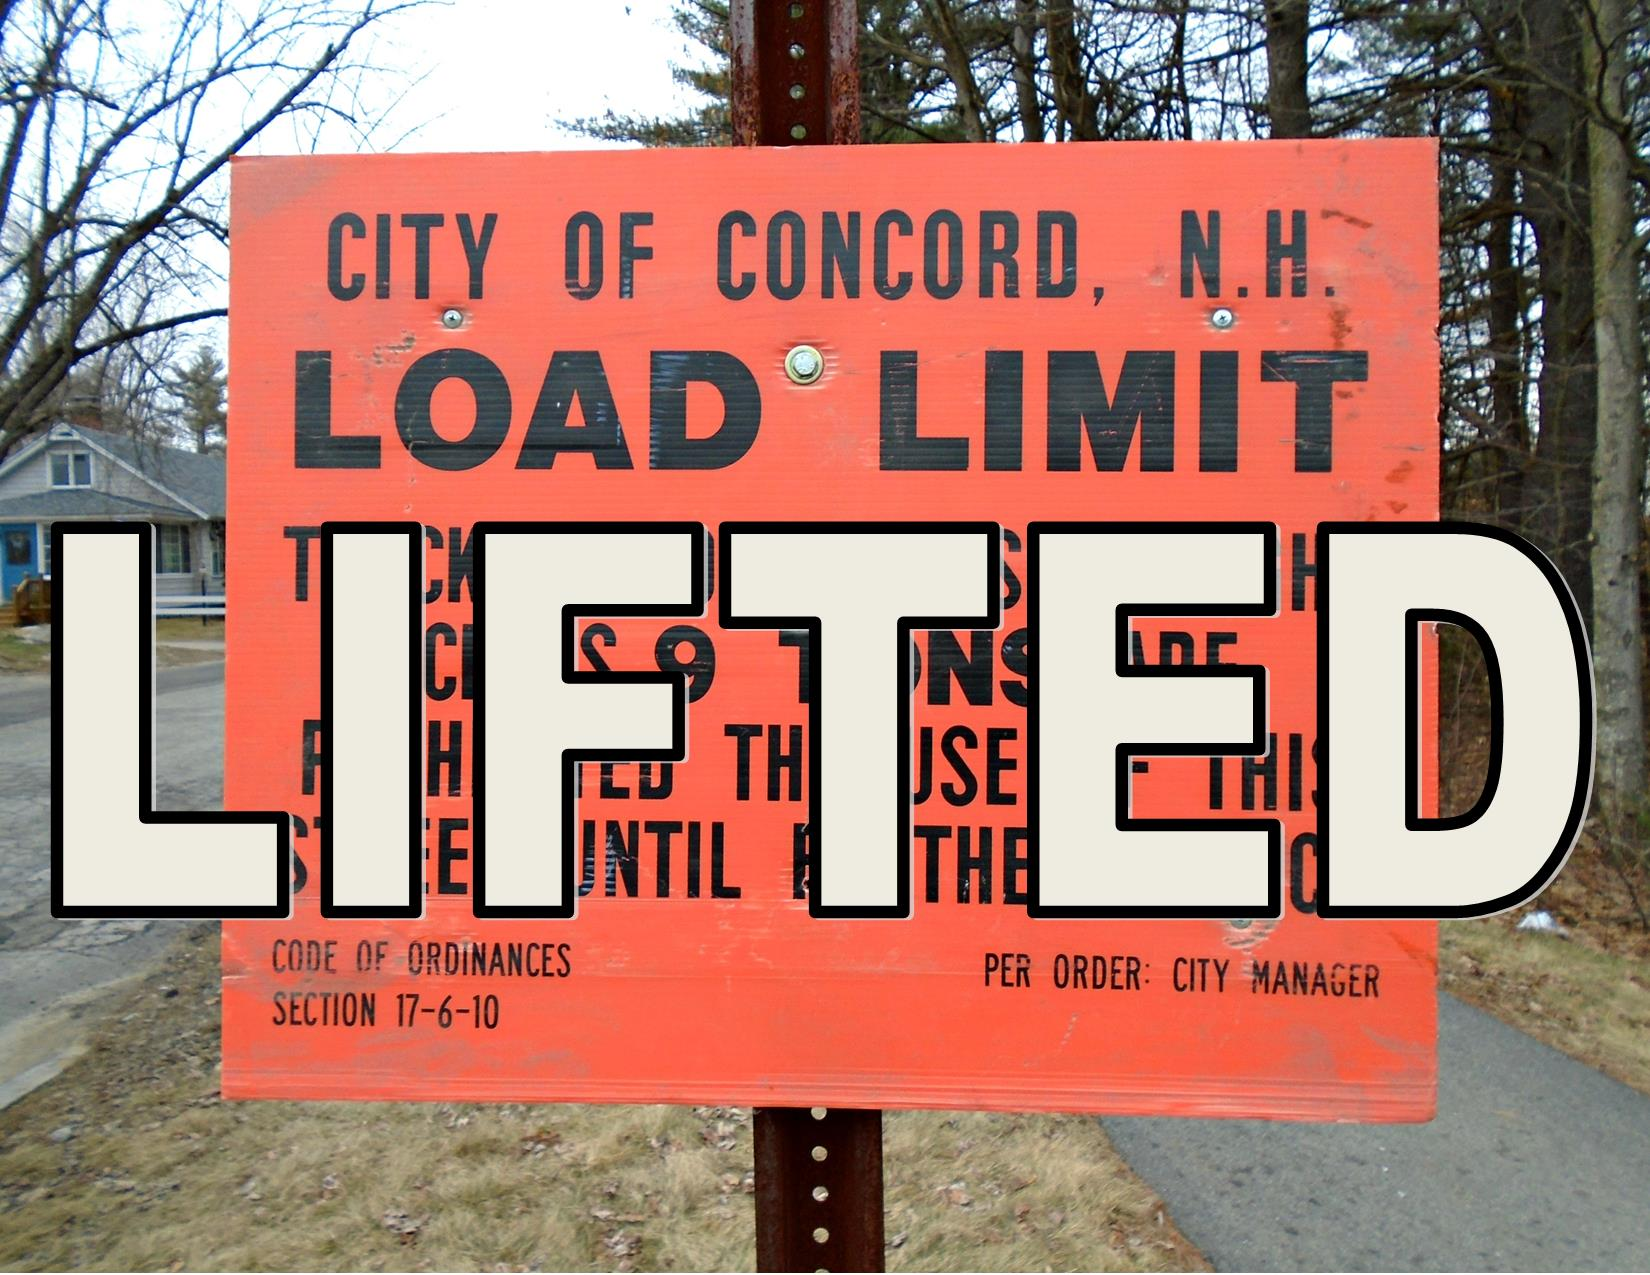 Concord Spring Road Load Limits Lifted